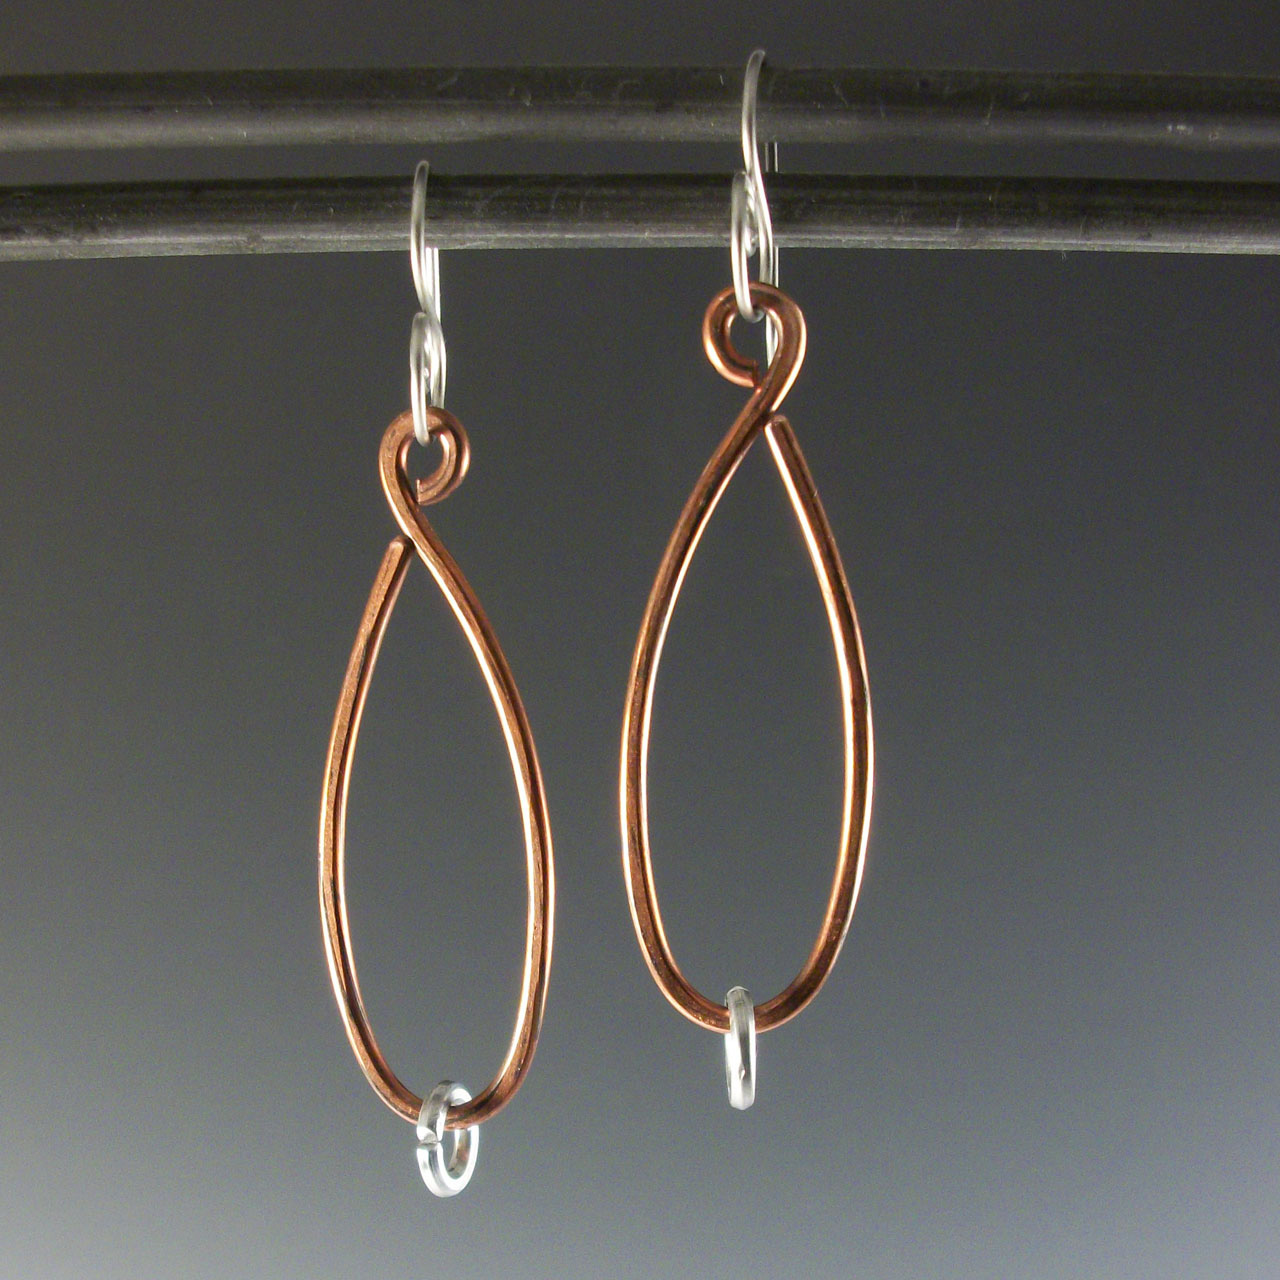 Copper Drips by Mckenna Hallett